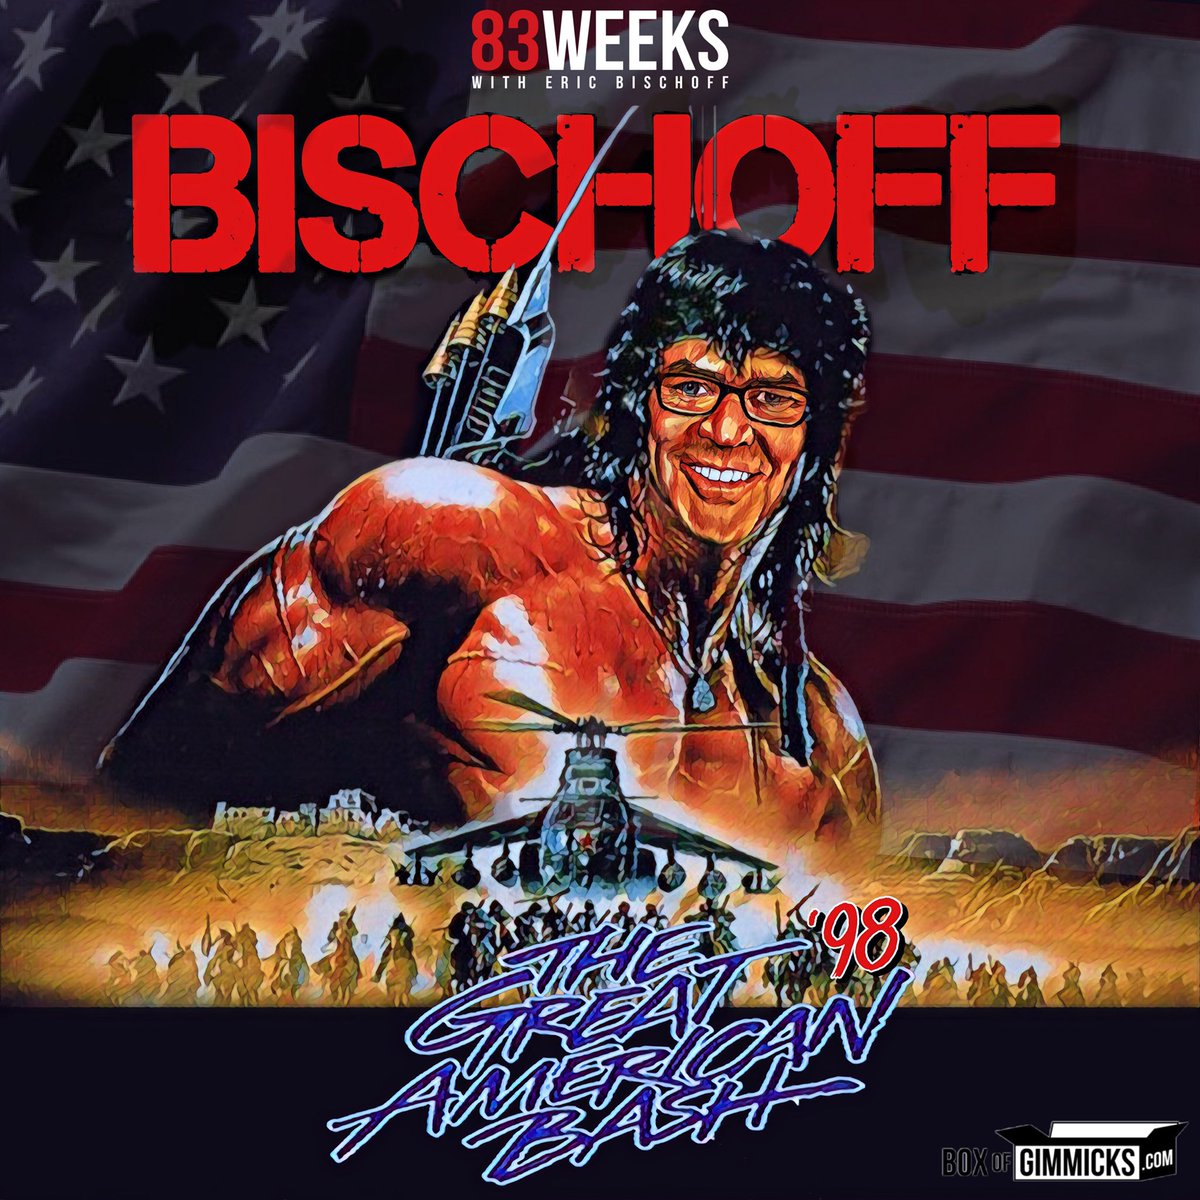 Join me tonight for a watch-a-long of Great American Bash 98. Go to @WWENetwork and locate the PPV from the vault, then join me at https://t.co/RE4CdLdahz at 8pm est tonight!